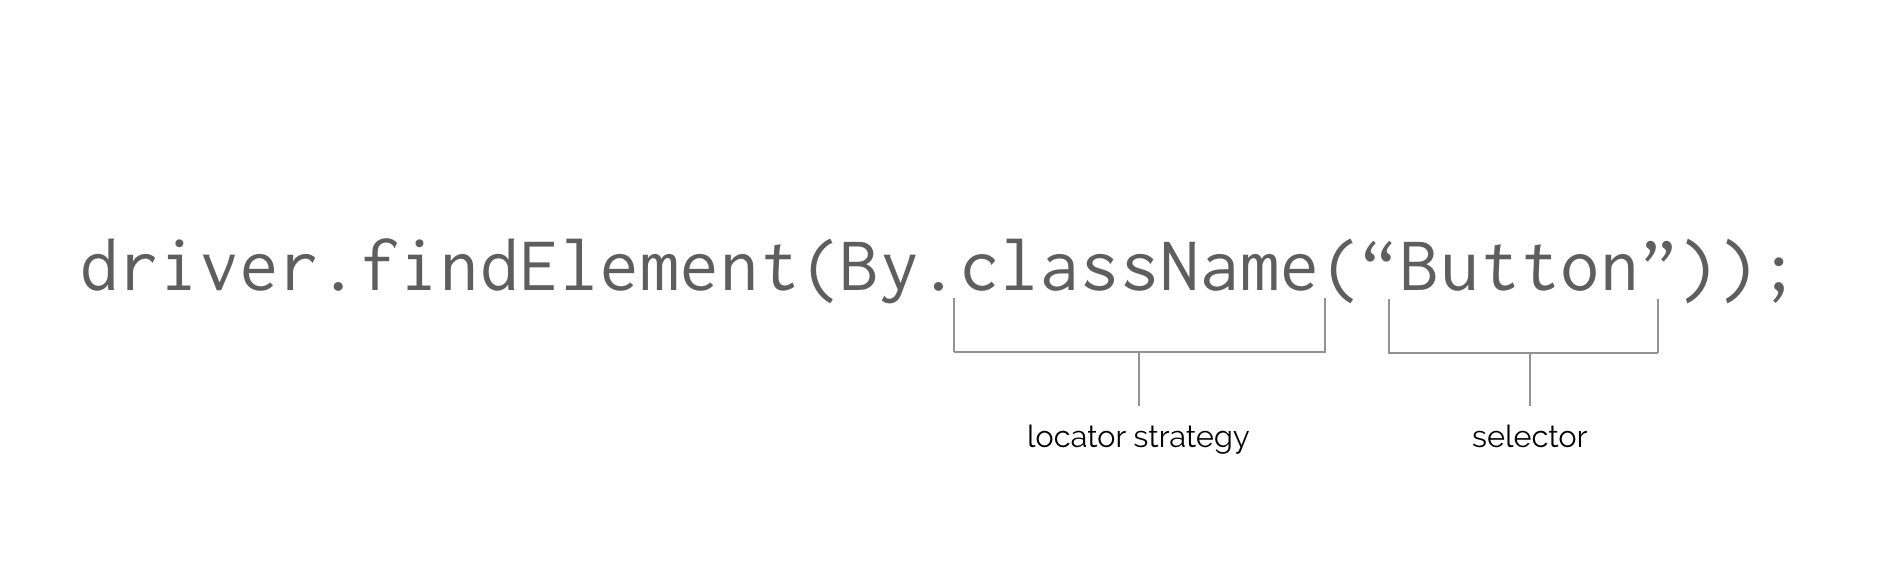 Components of a find element call